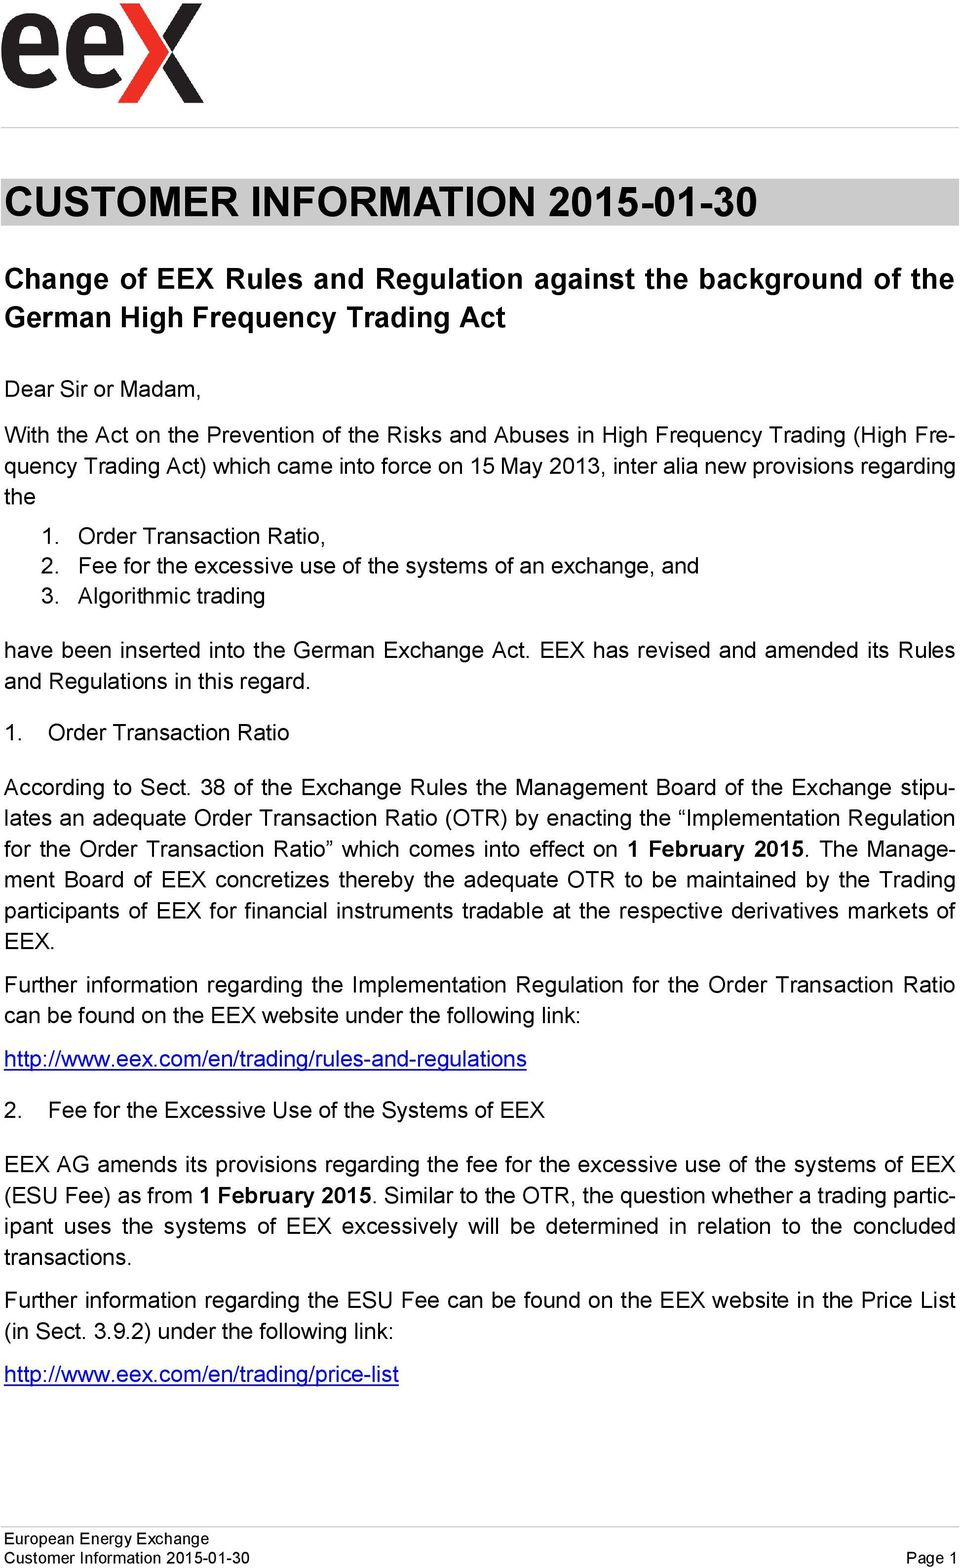 Fee for the excessive use of the systems of an exchange, and 3. Algorithmic trading have been inserted into the German Exchange Act.